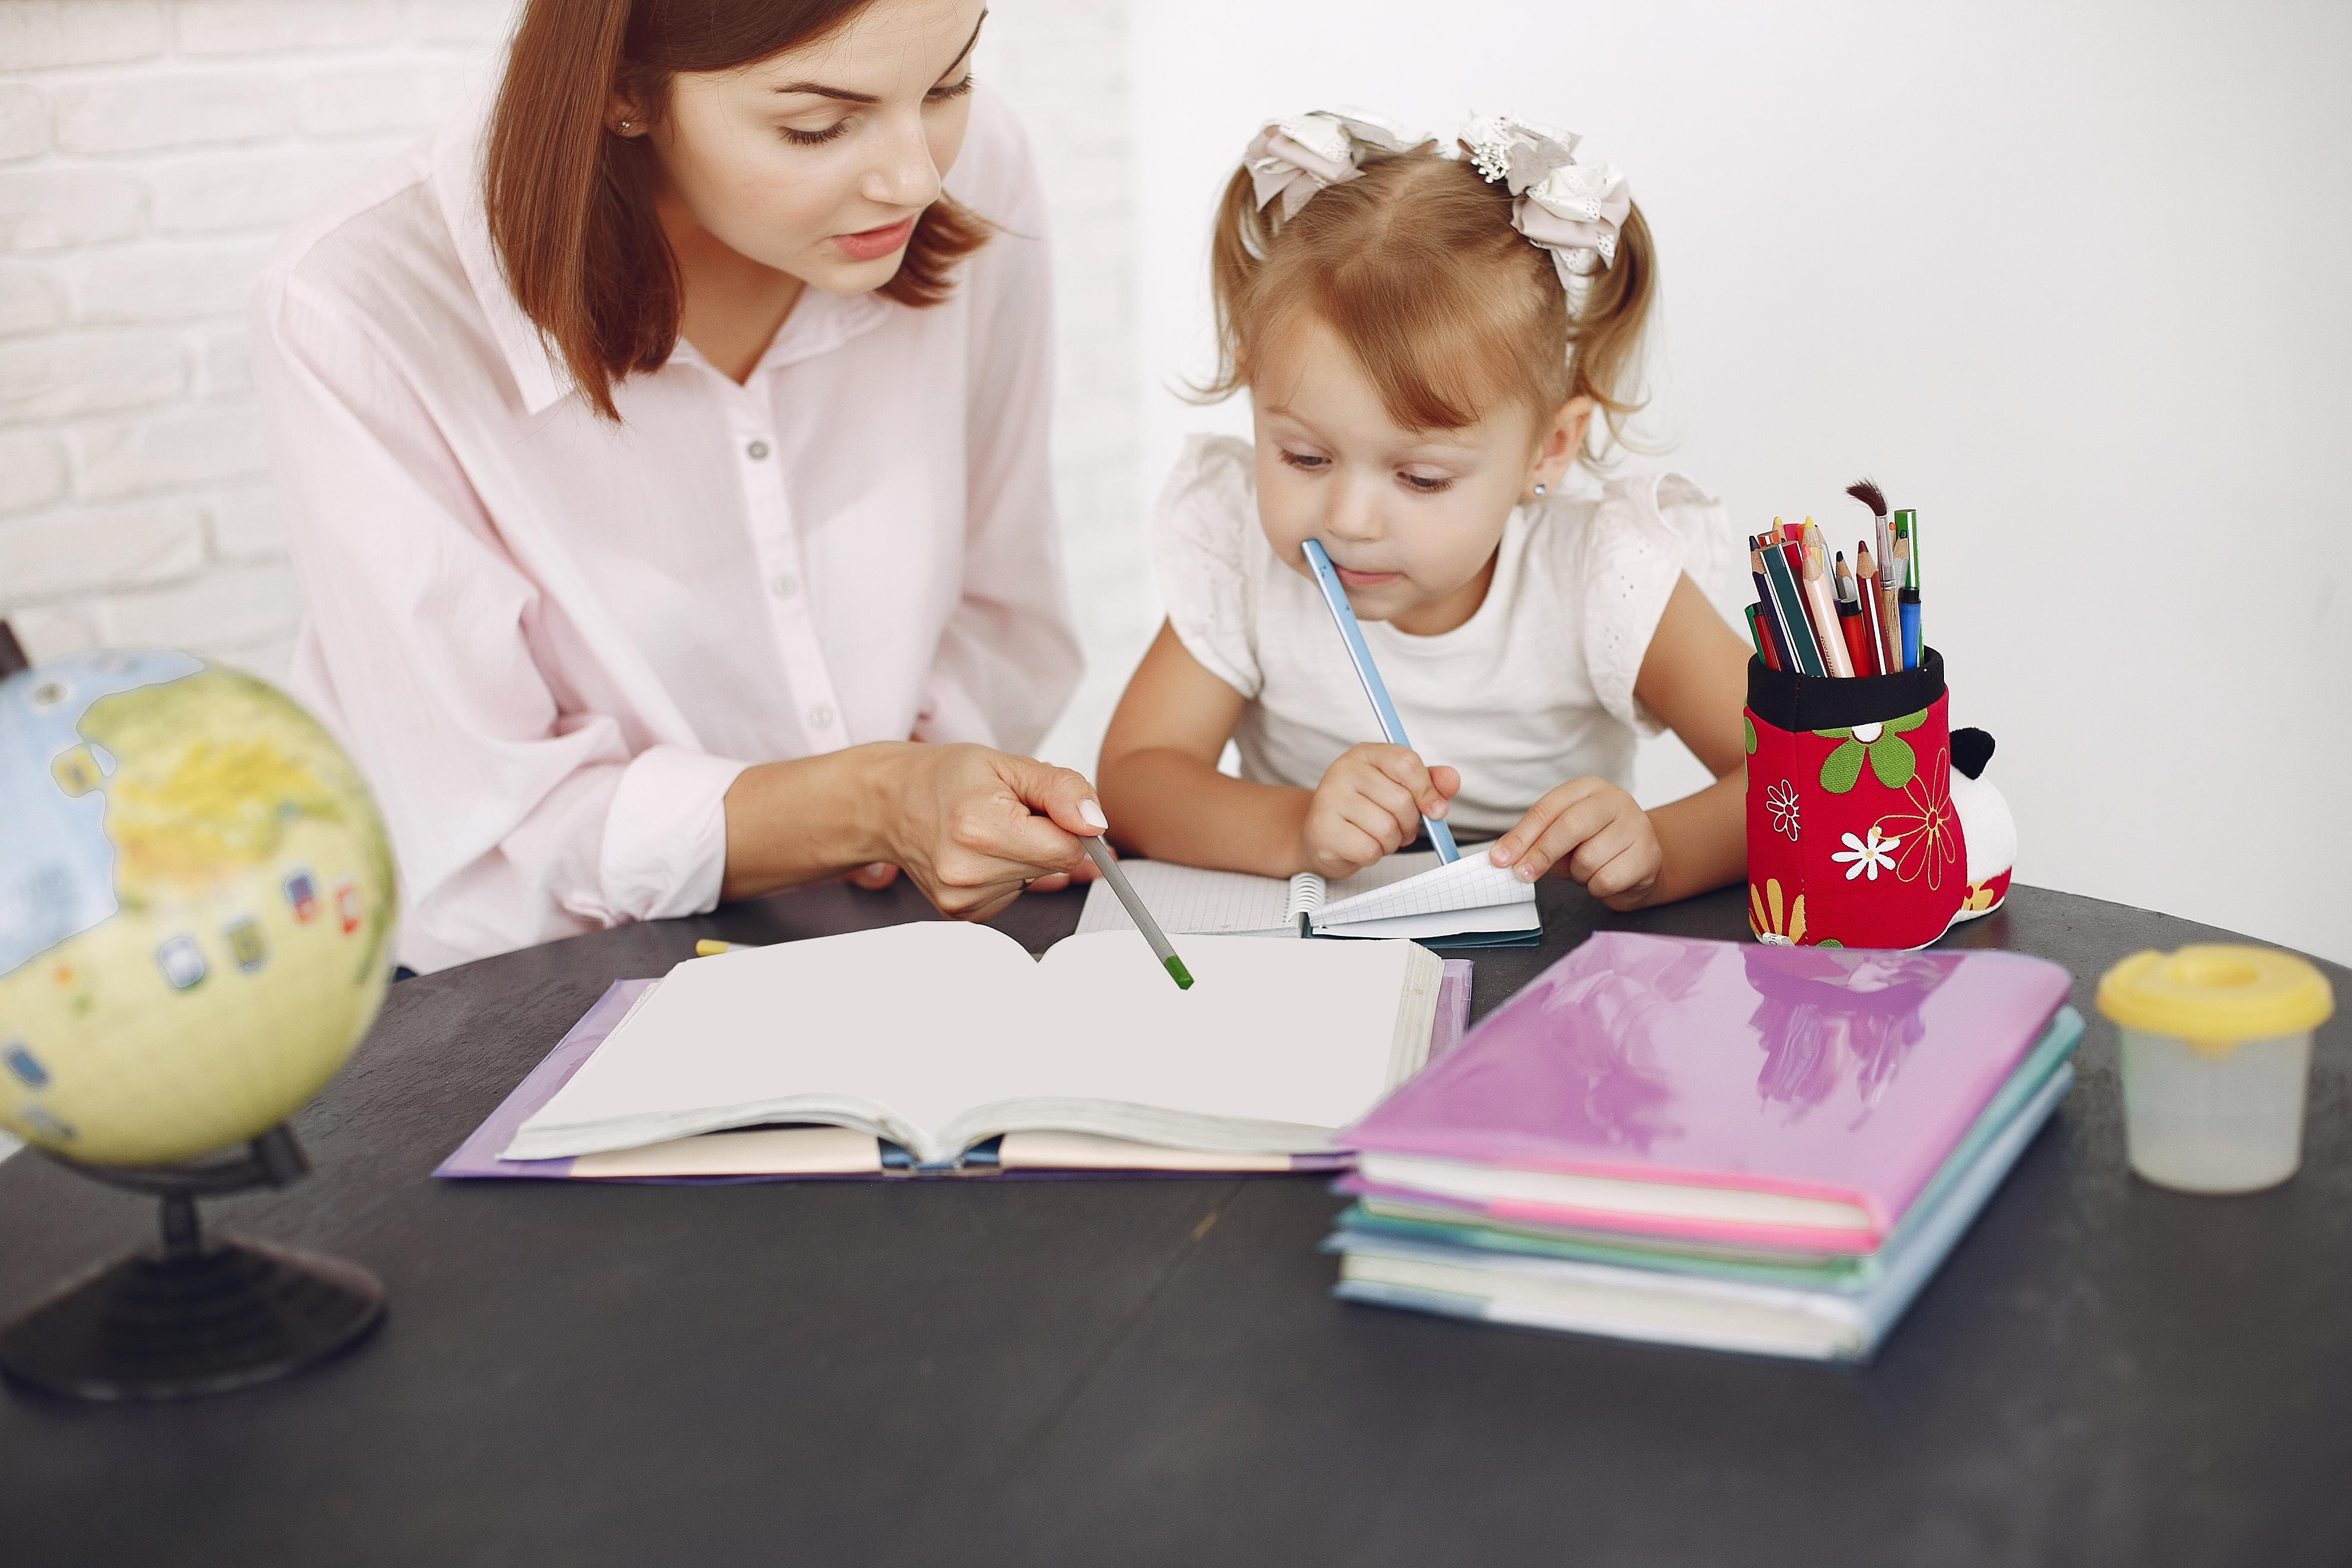 pre kindergarten child and tutor looking and pointing at notebook